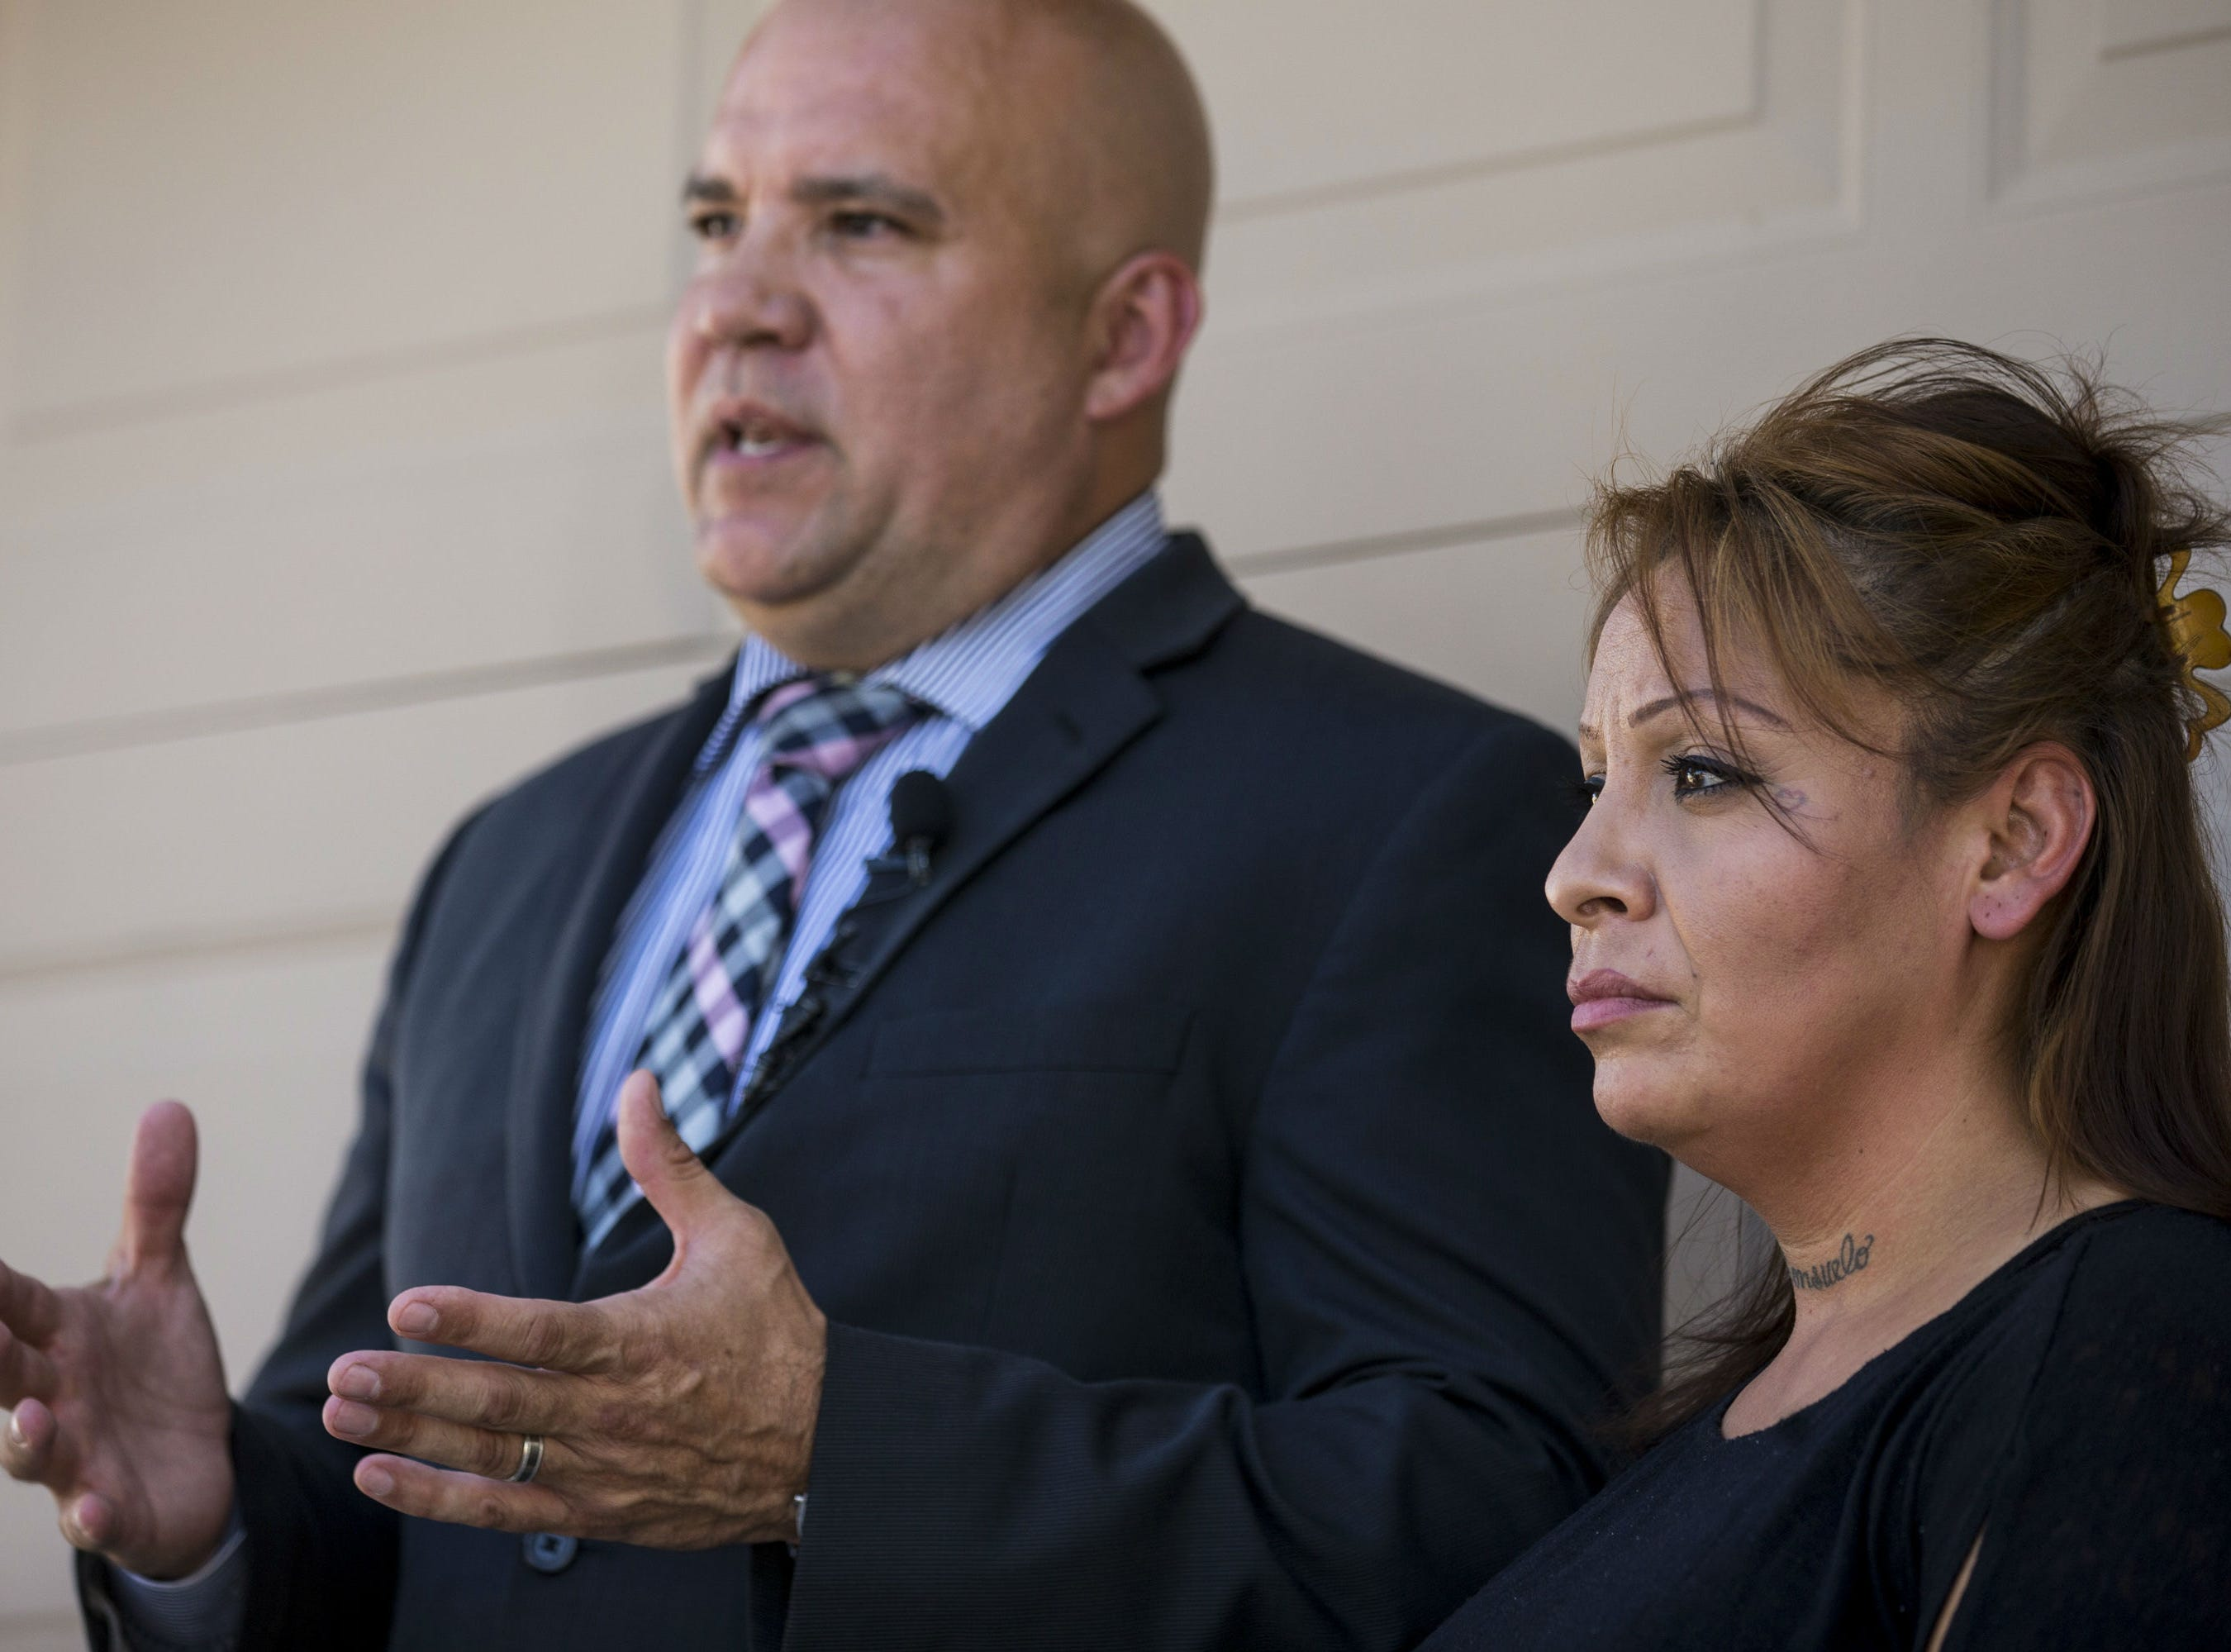 Renee Armenta listens as her attorney, Anthony Ramirez, speaks during a press conference on Sept. 11, 2018, in Avondale. A video taken by a bystander showed Armenta being dragged from her car and across asphalt by a Goodyear police officer.